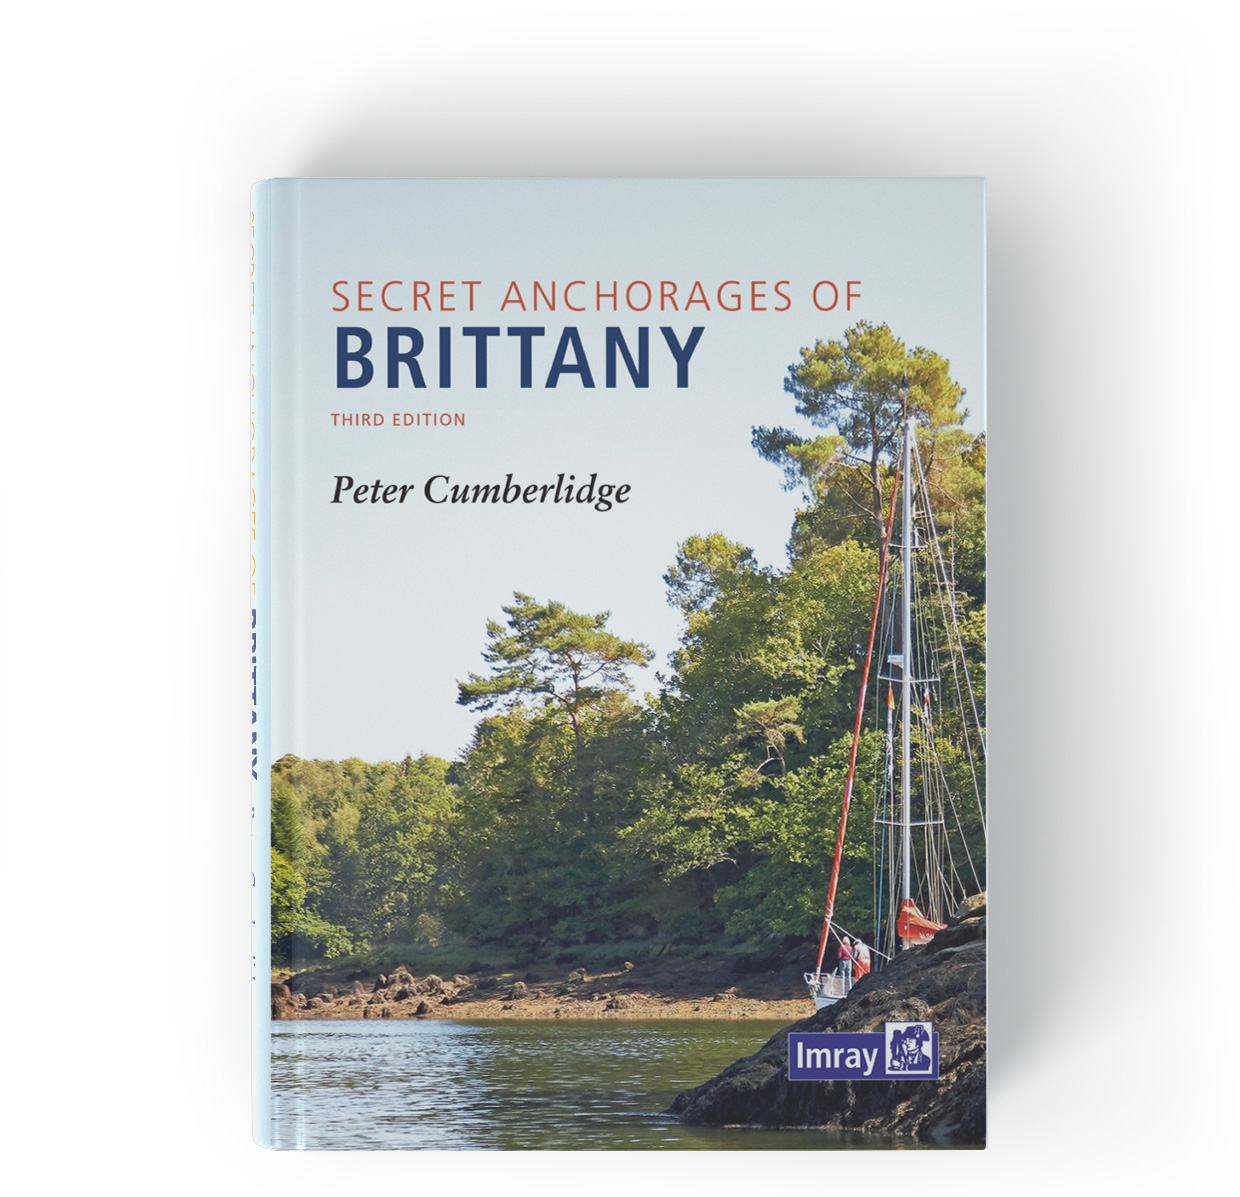 Secret Anchorages of Brittany